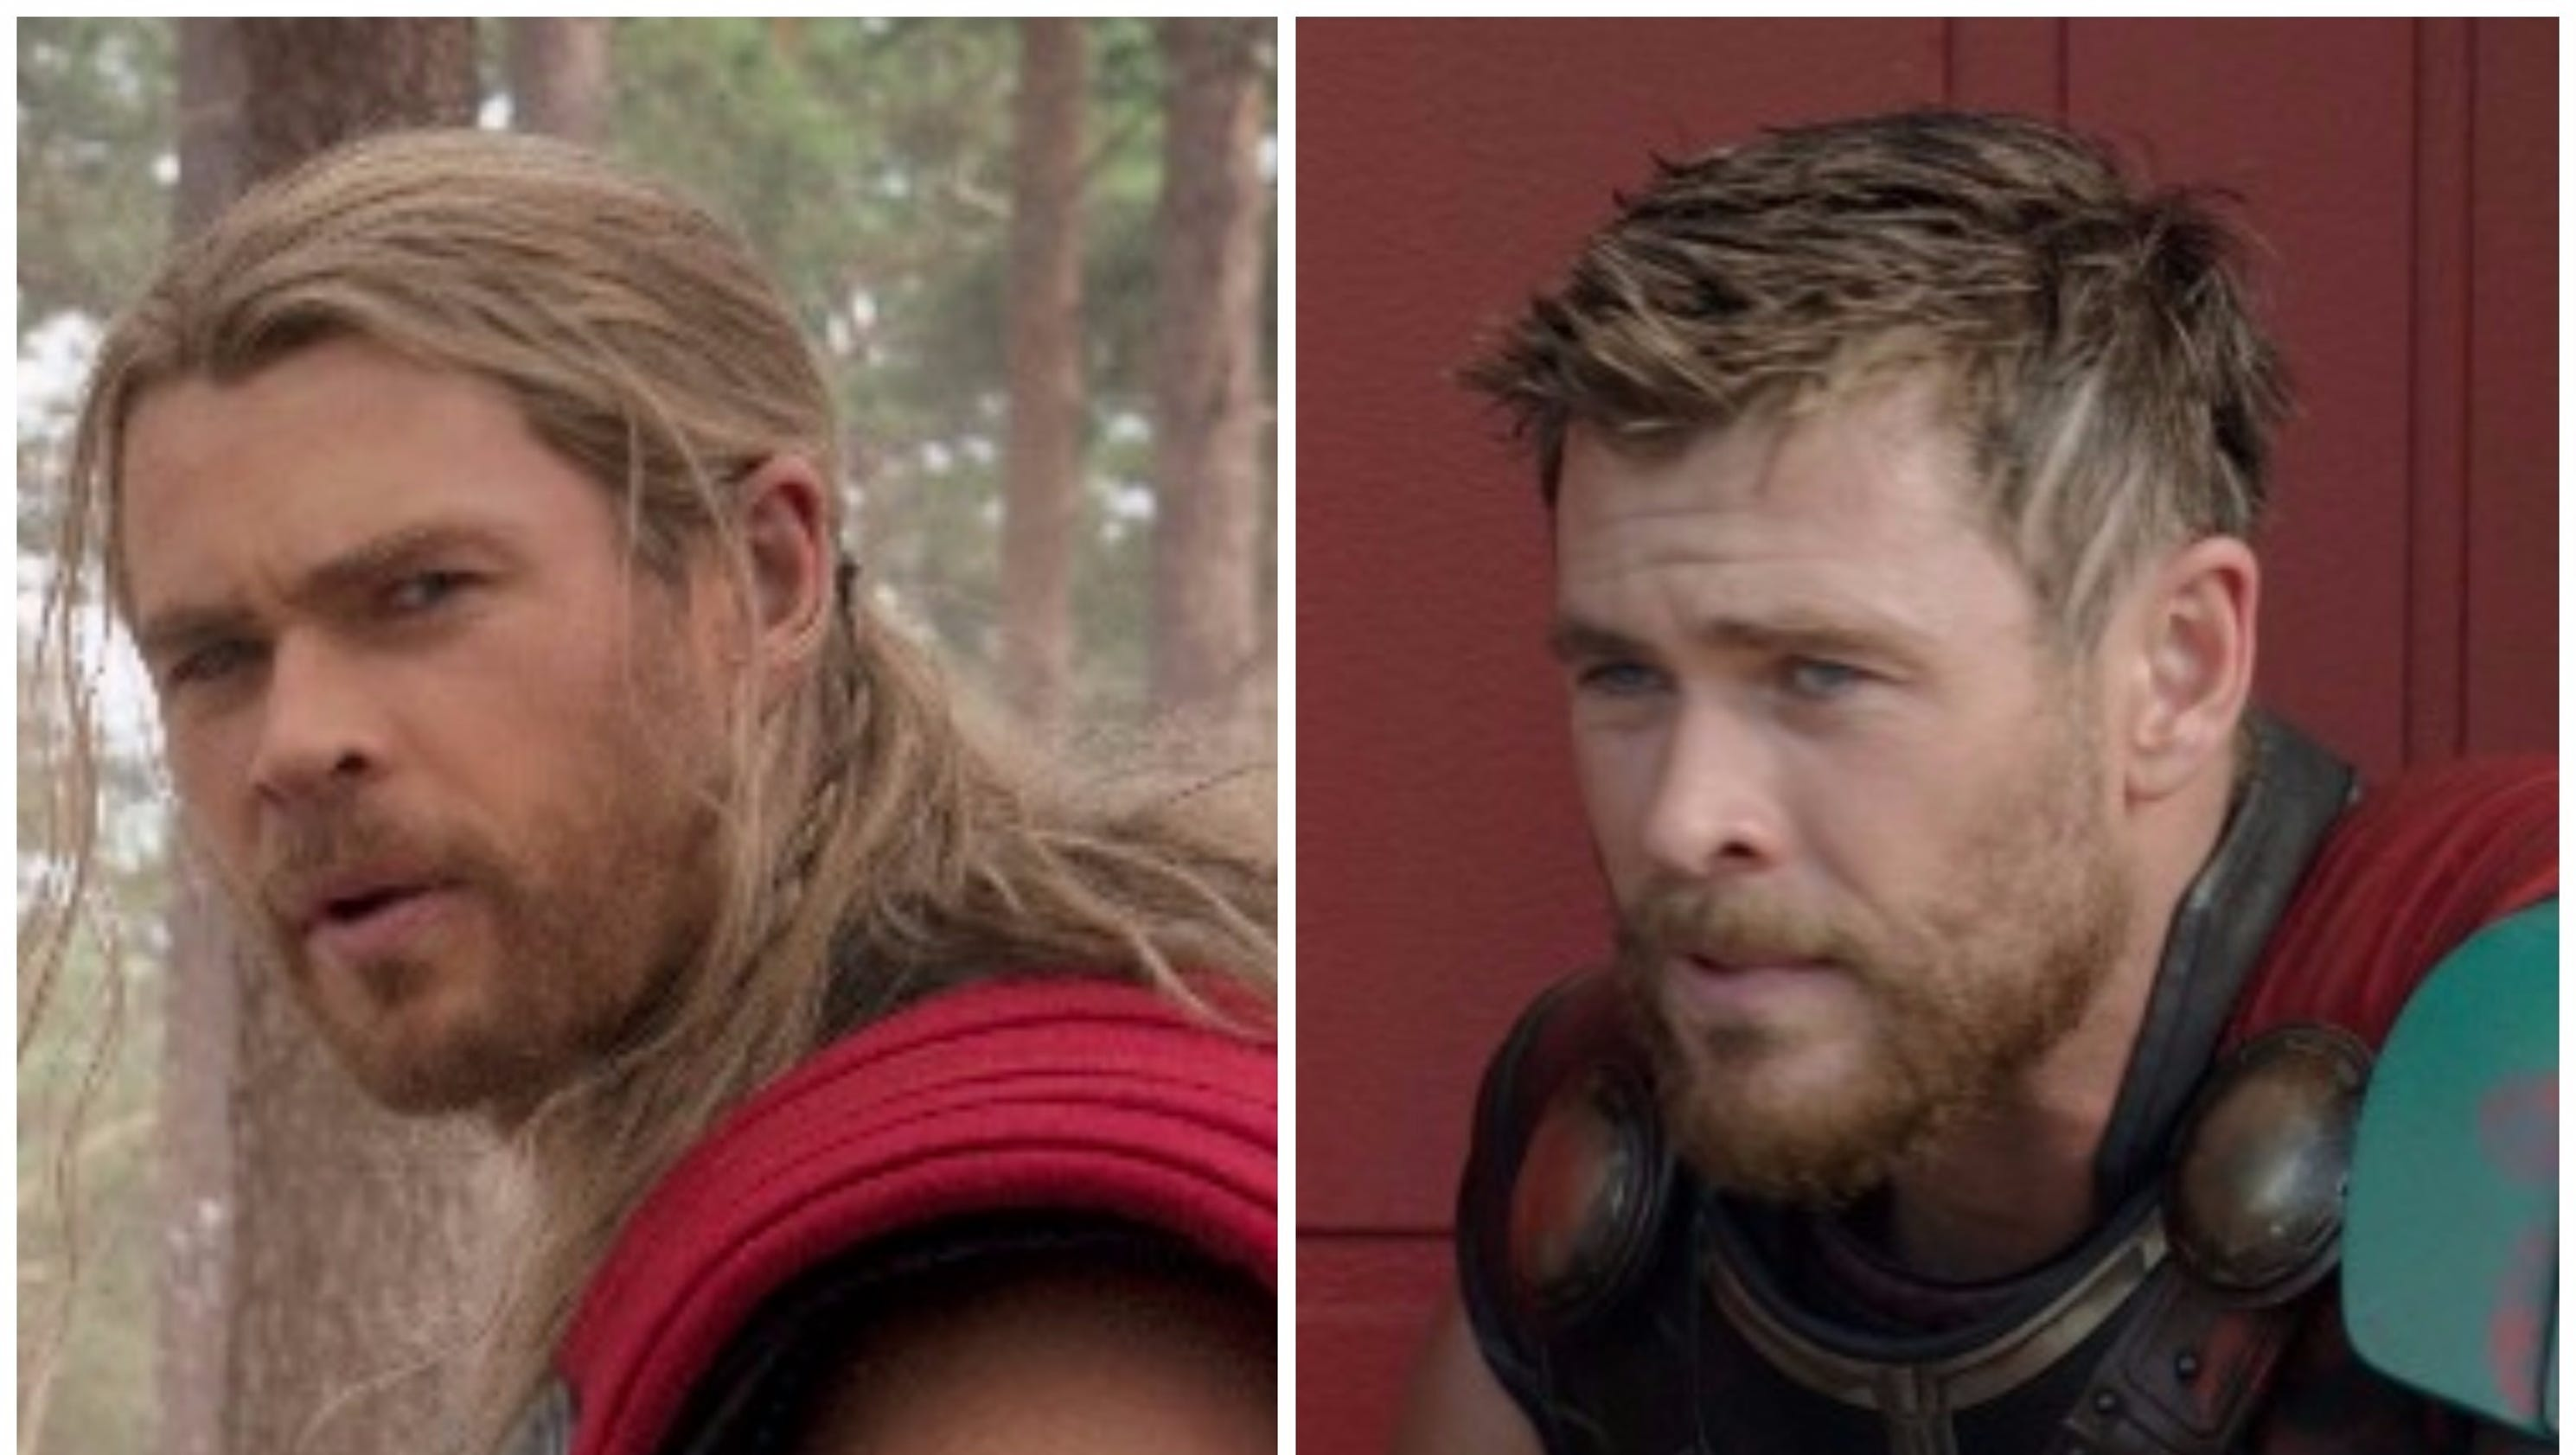 Thor ragnarok whats with the short hair on chris hemsworth thor ragnarok whats with the short hair on chris hemsworth pmusecretfo Choice Image